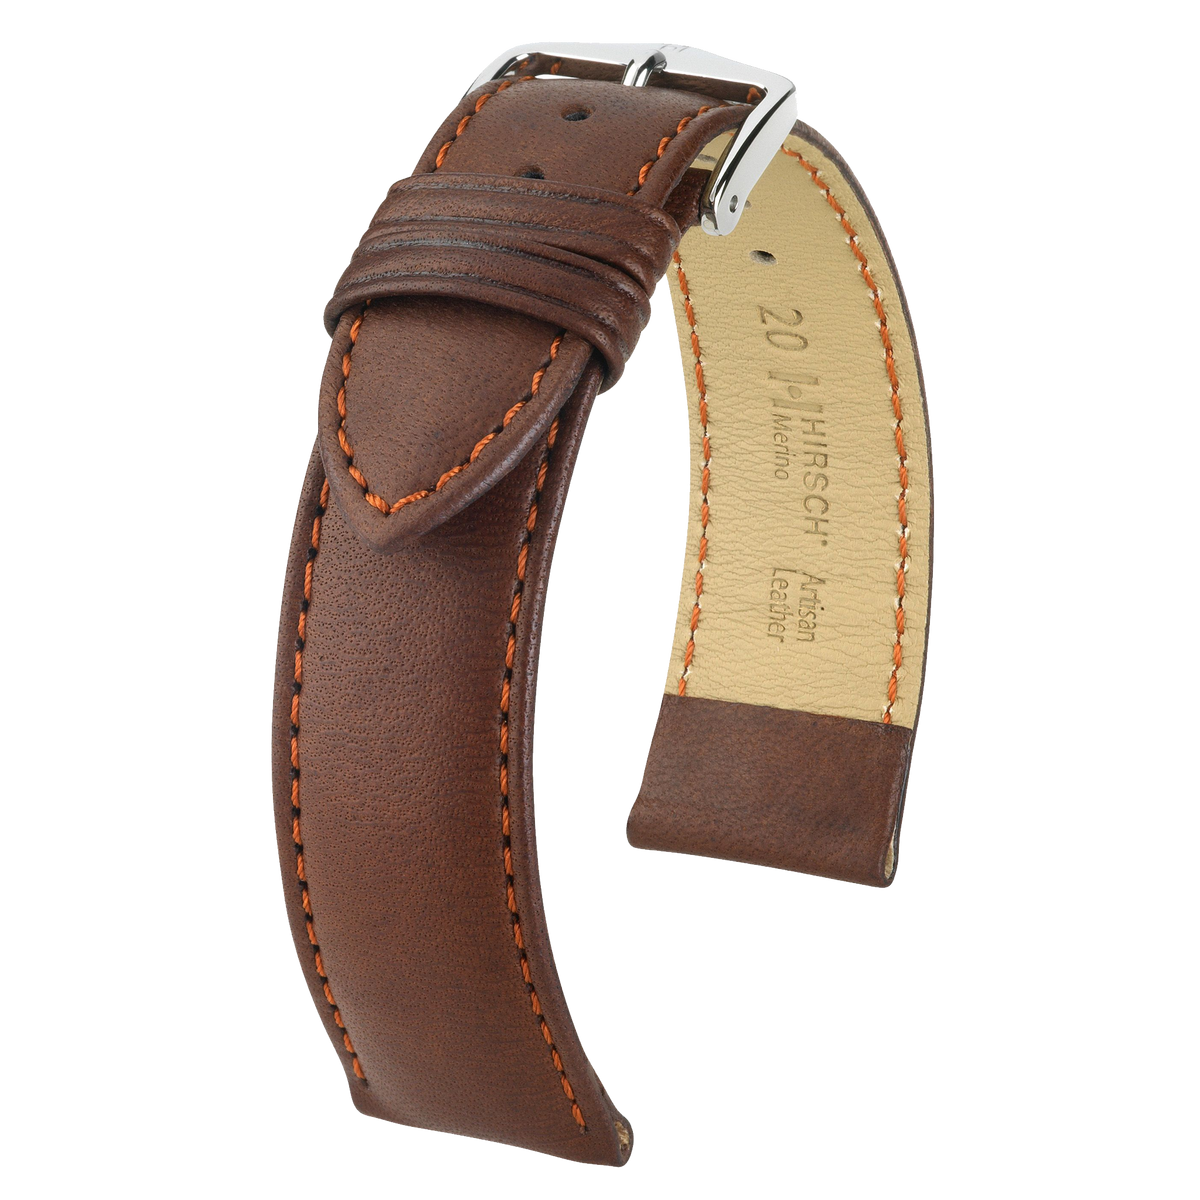 Hirsch MERINO Nappa Leather Watch Strap